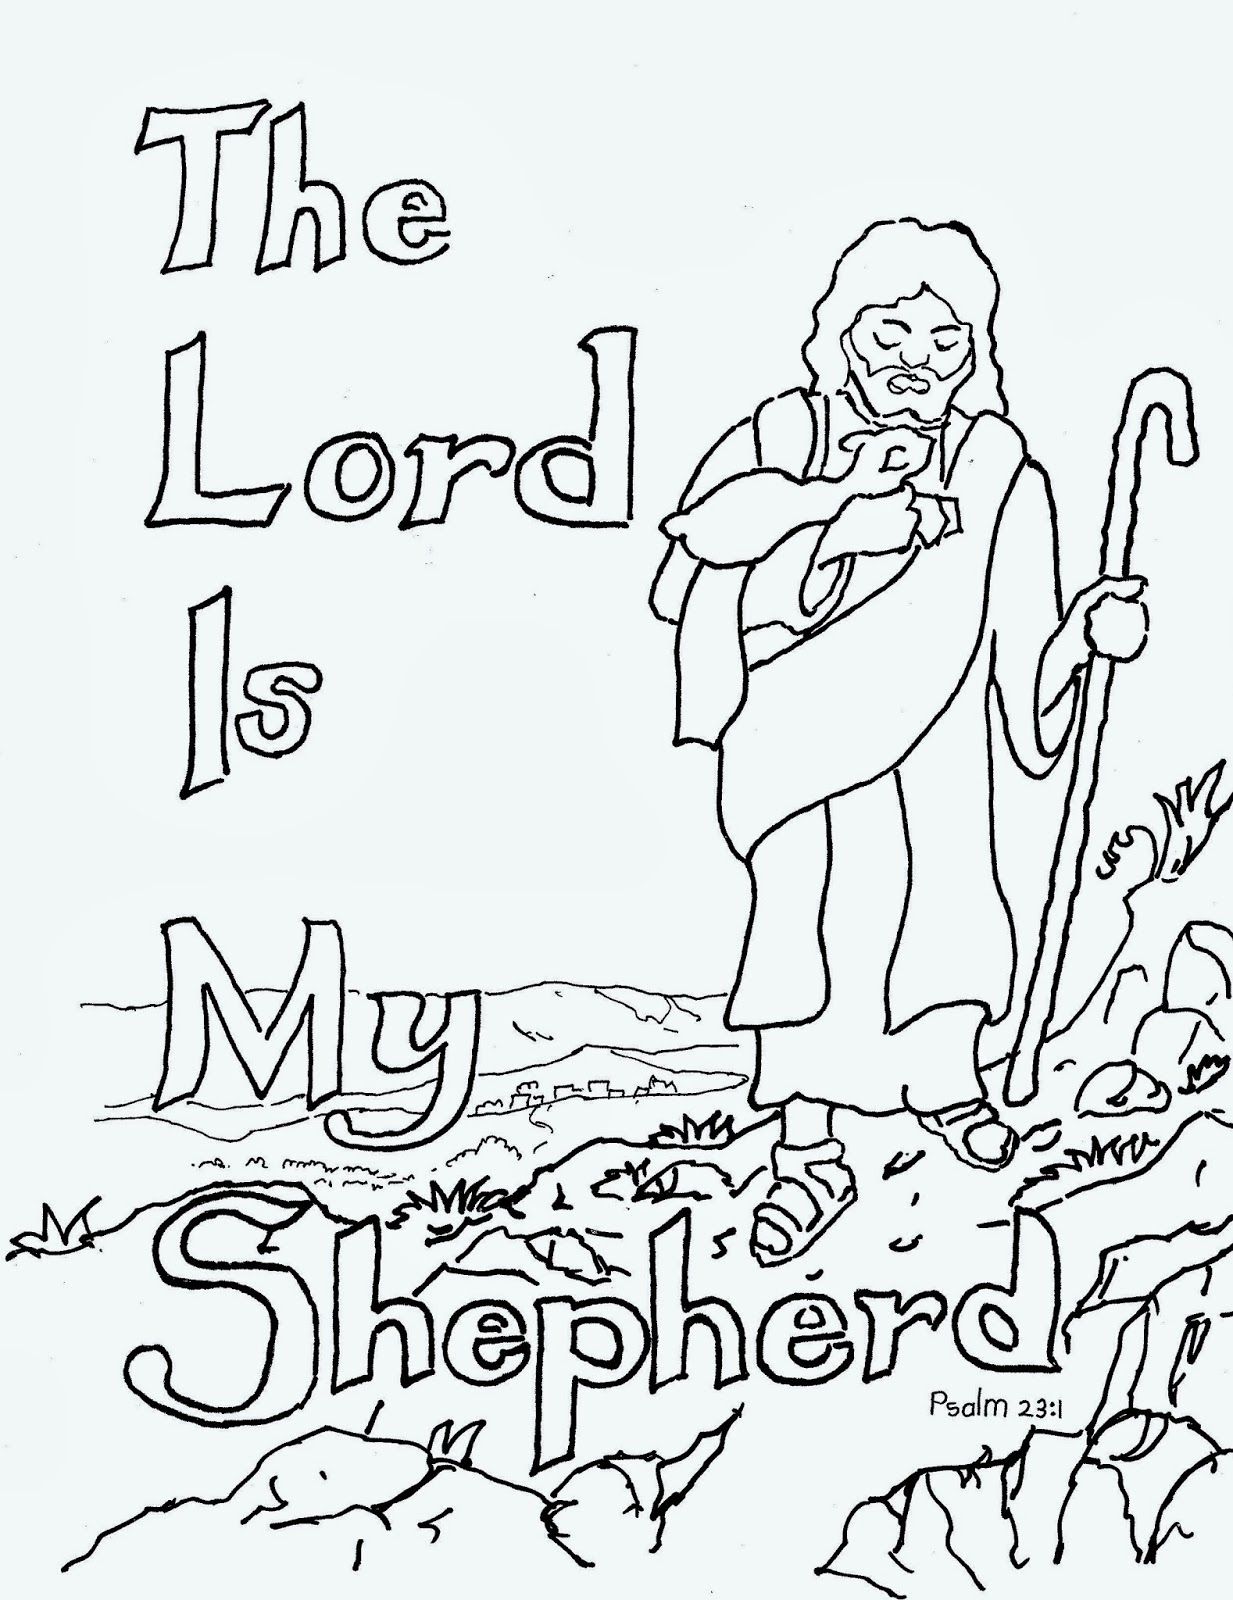 psalm 23 coloring page - the lord is my shepherd coloring page